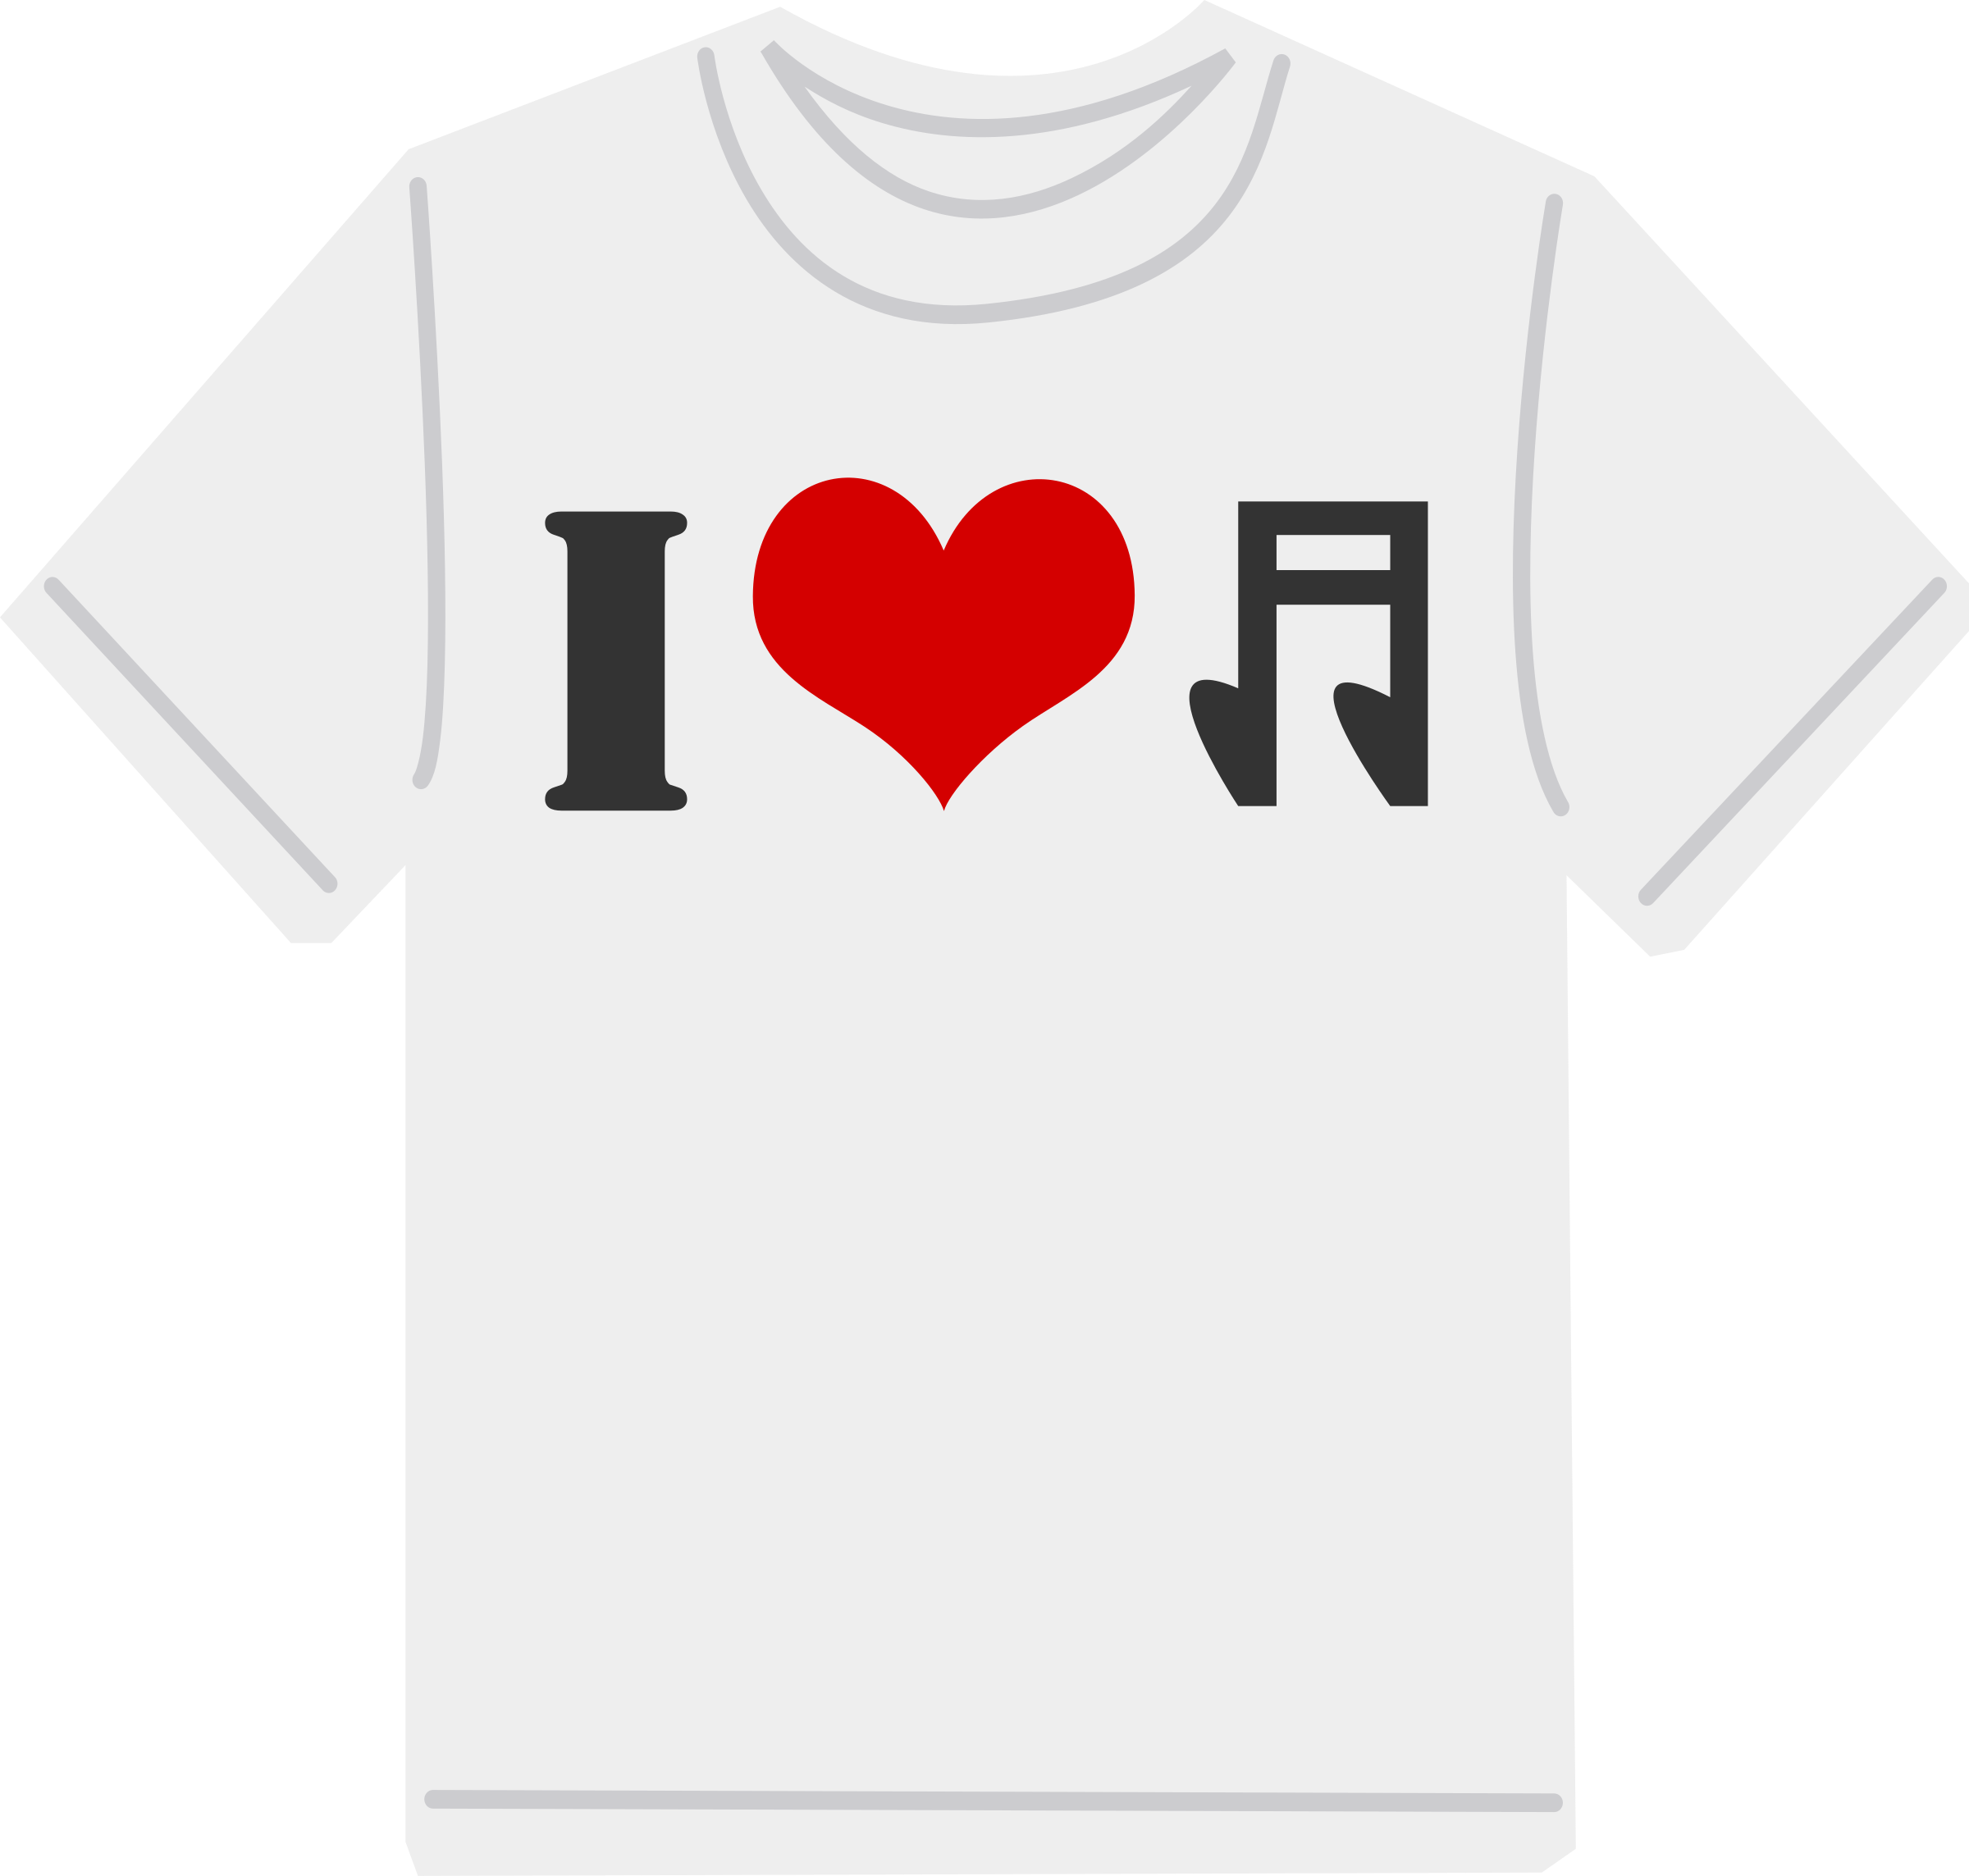 I Love music T-shirt by shokunin